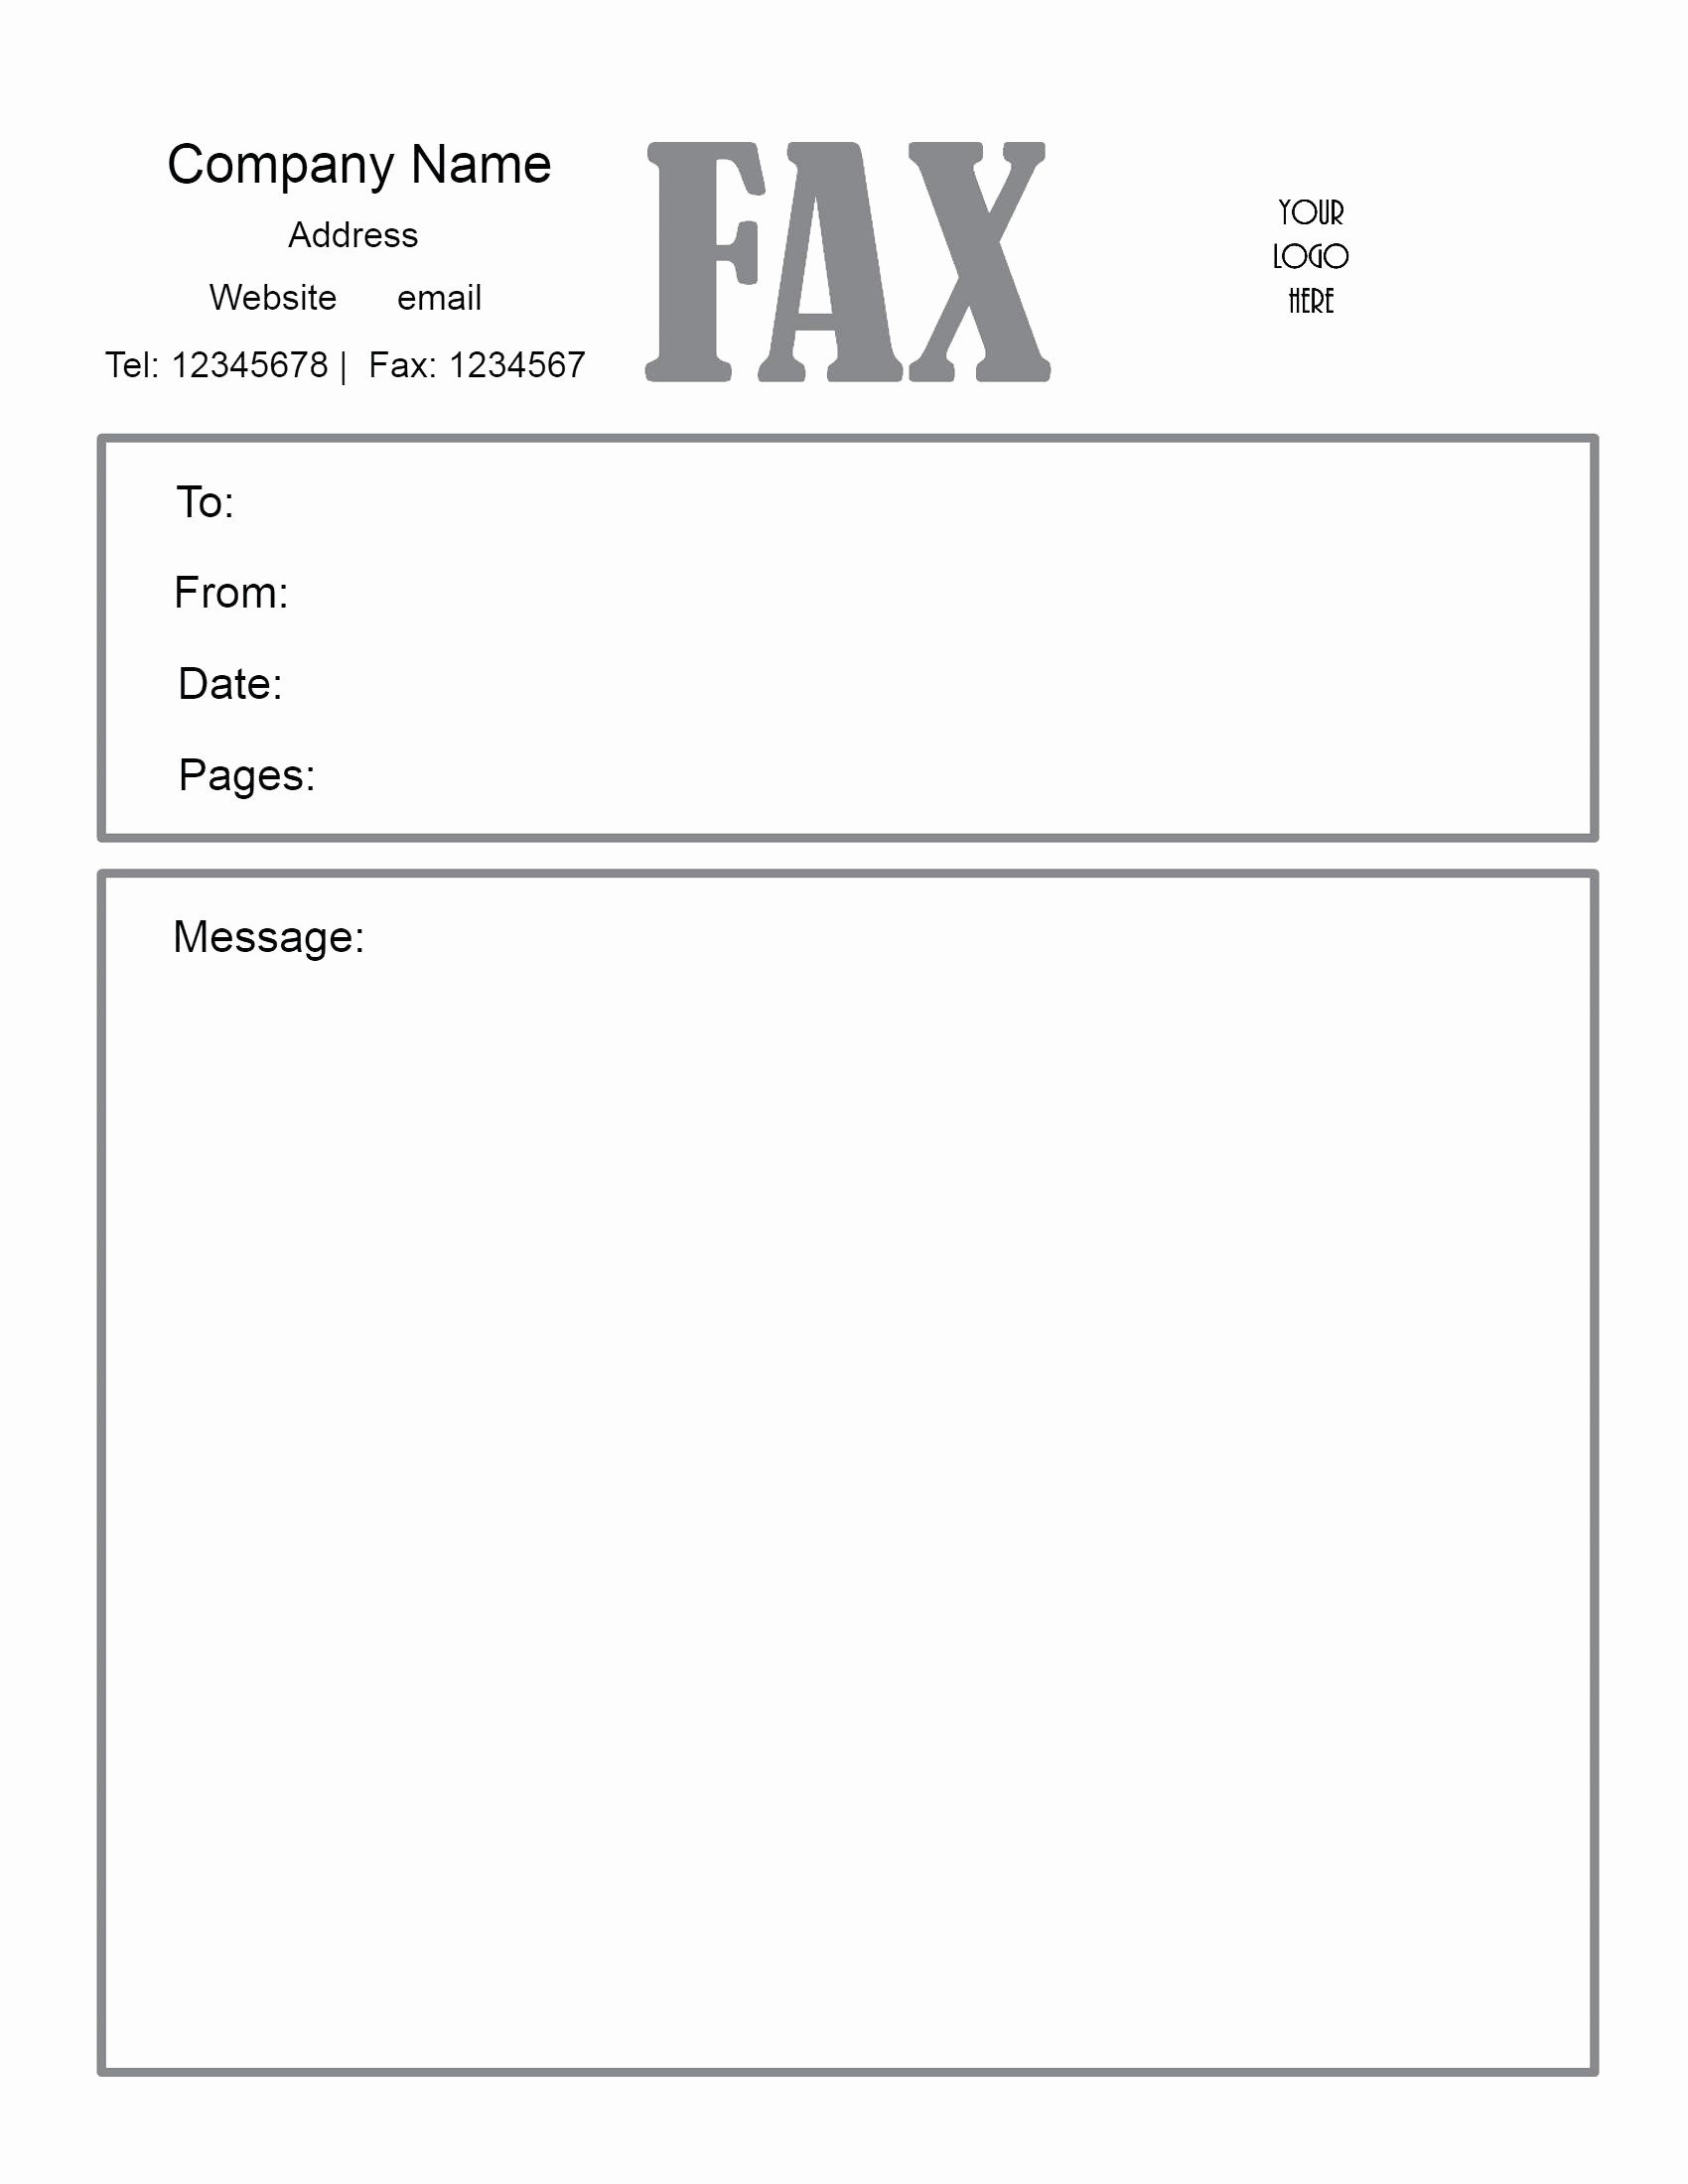 Free Cover Letter Templates Pdf Best Of Fax Cover Sheet Pdf Free Download